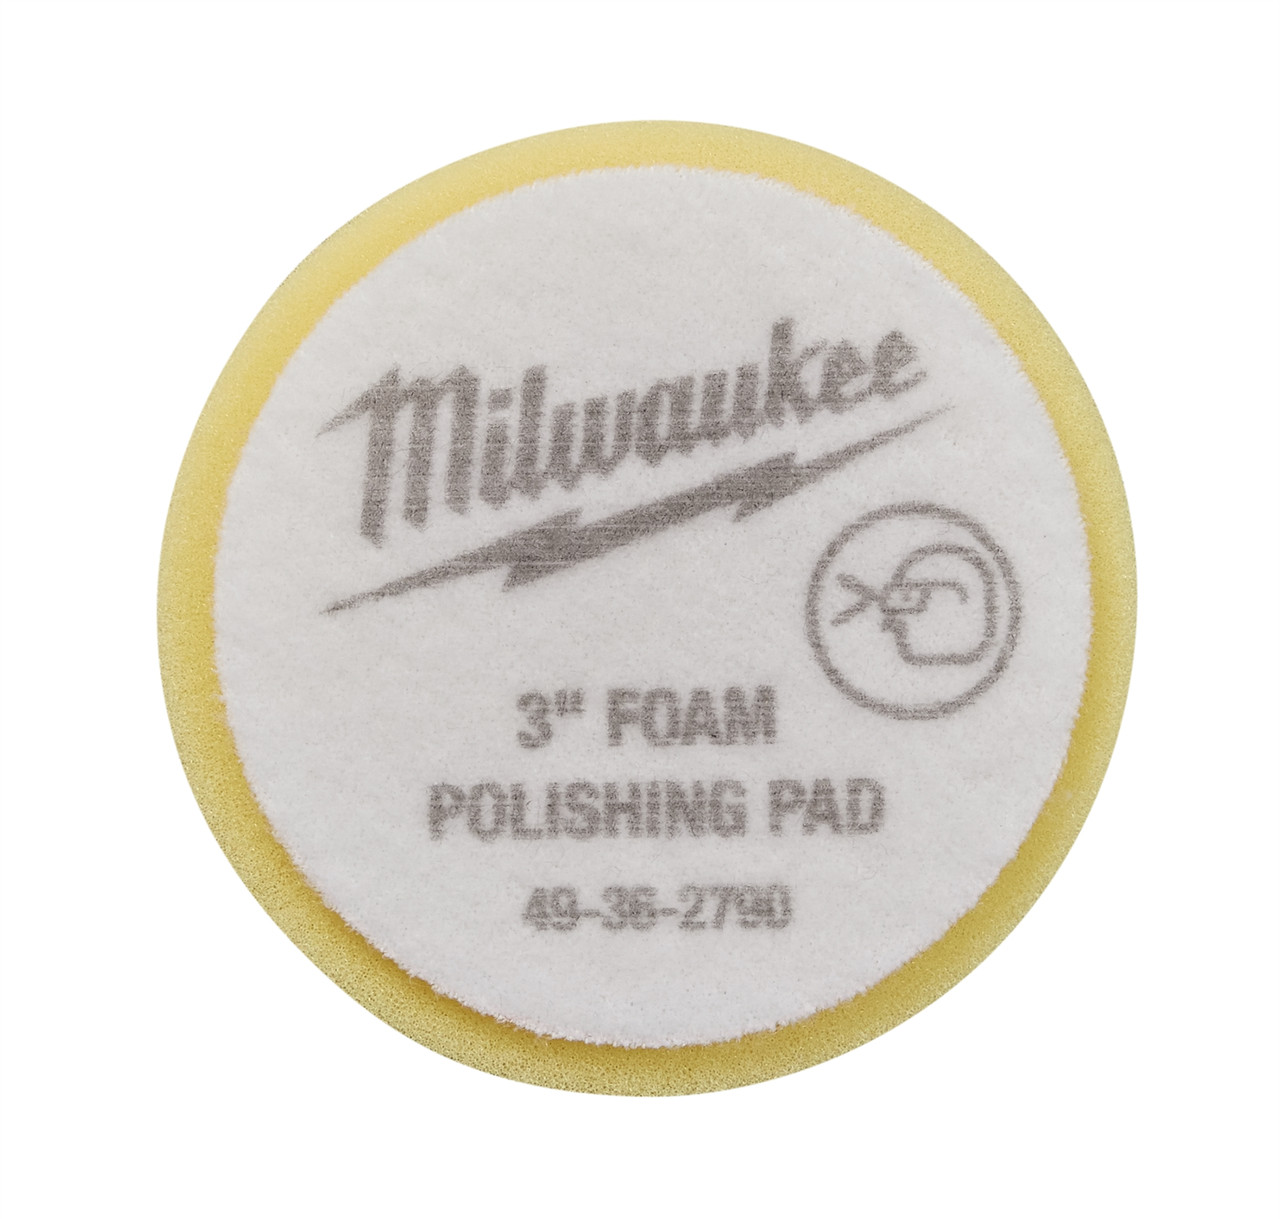 Milwaukee 49-36-2790 3 in. Yellow Foam Polishing Pad